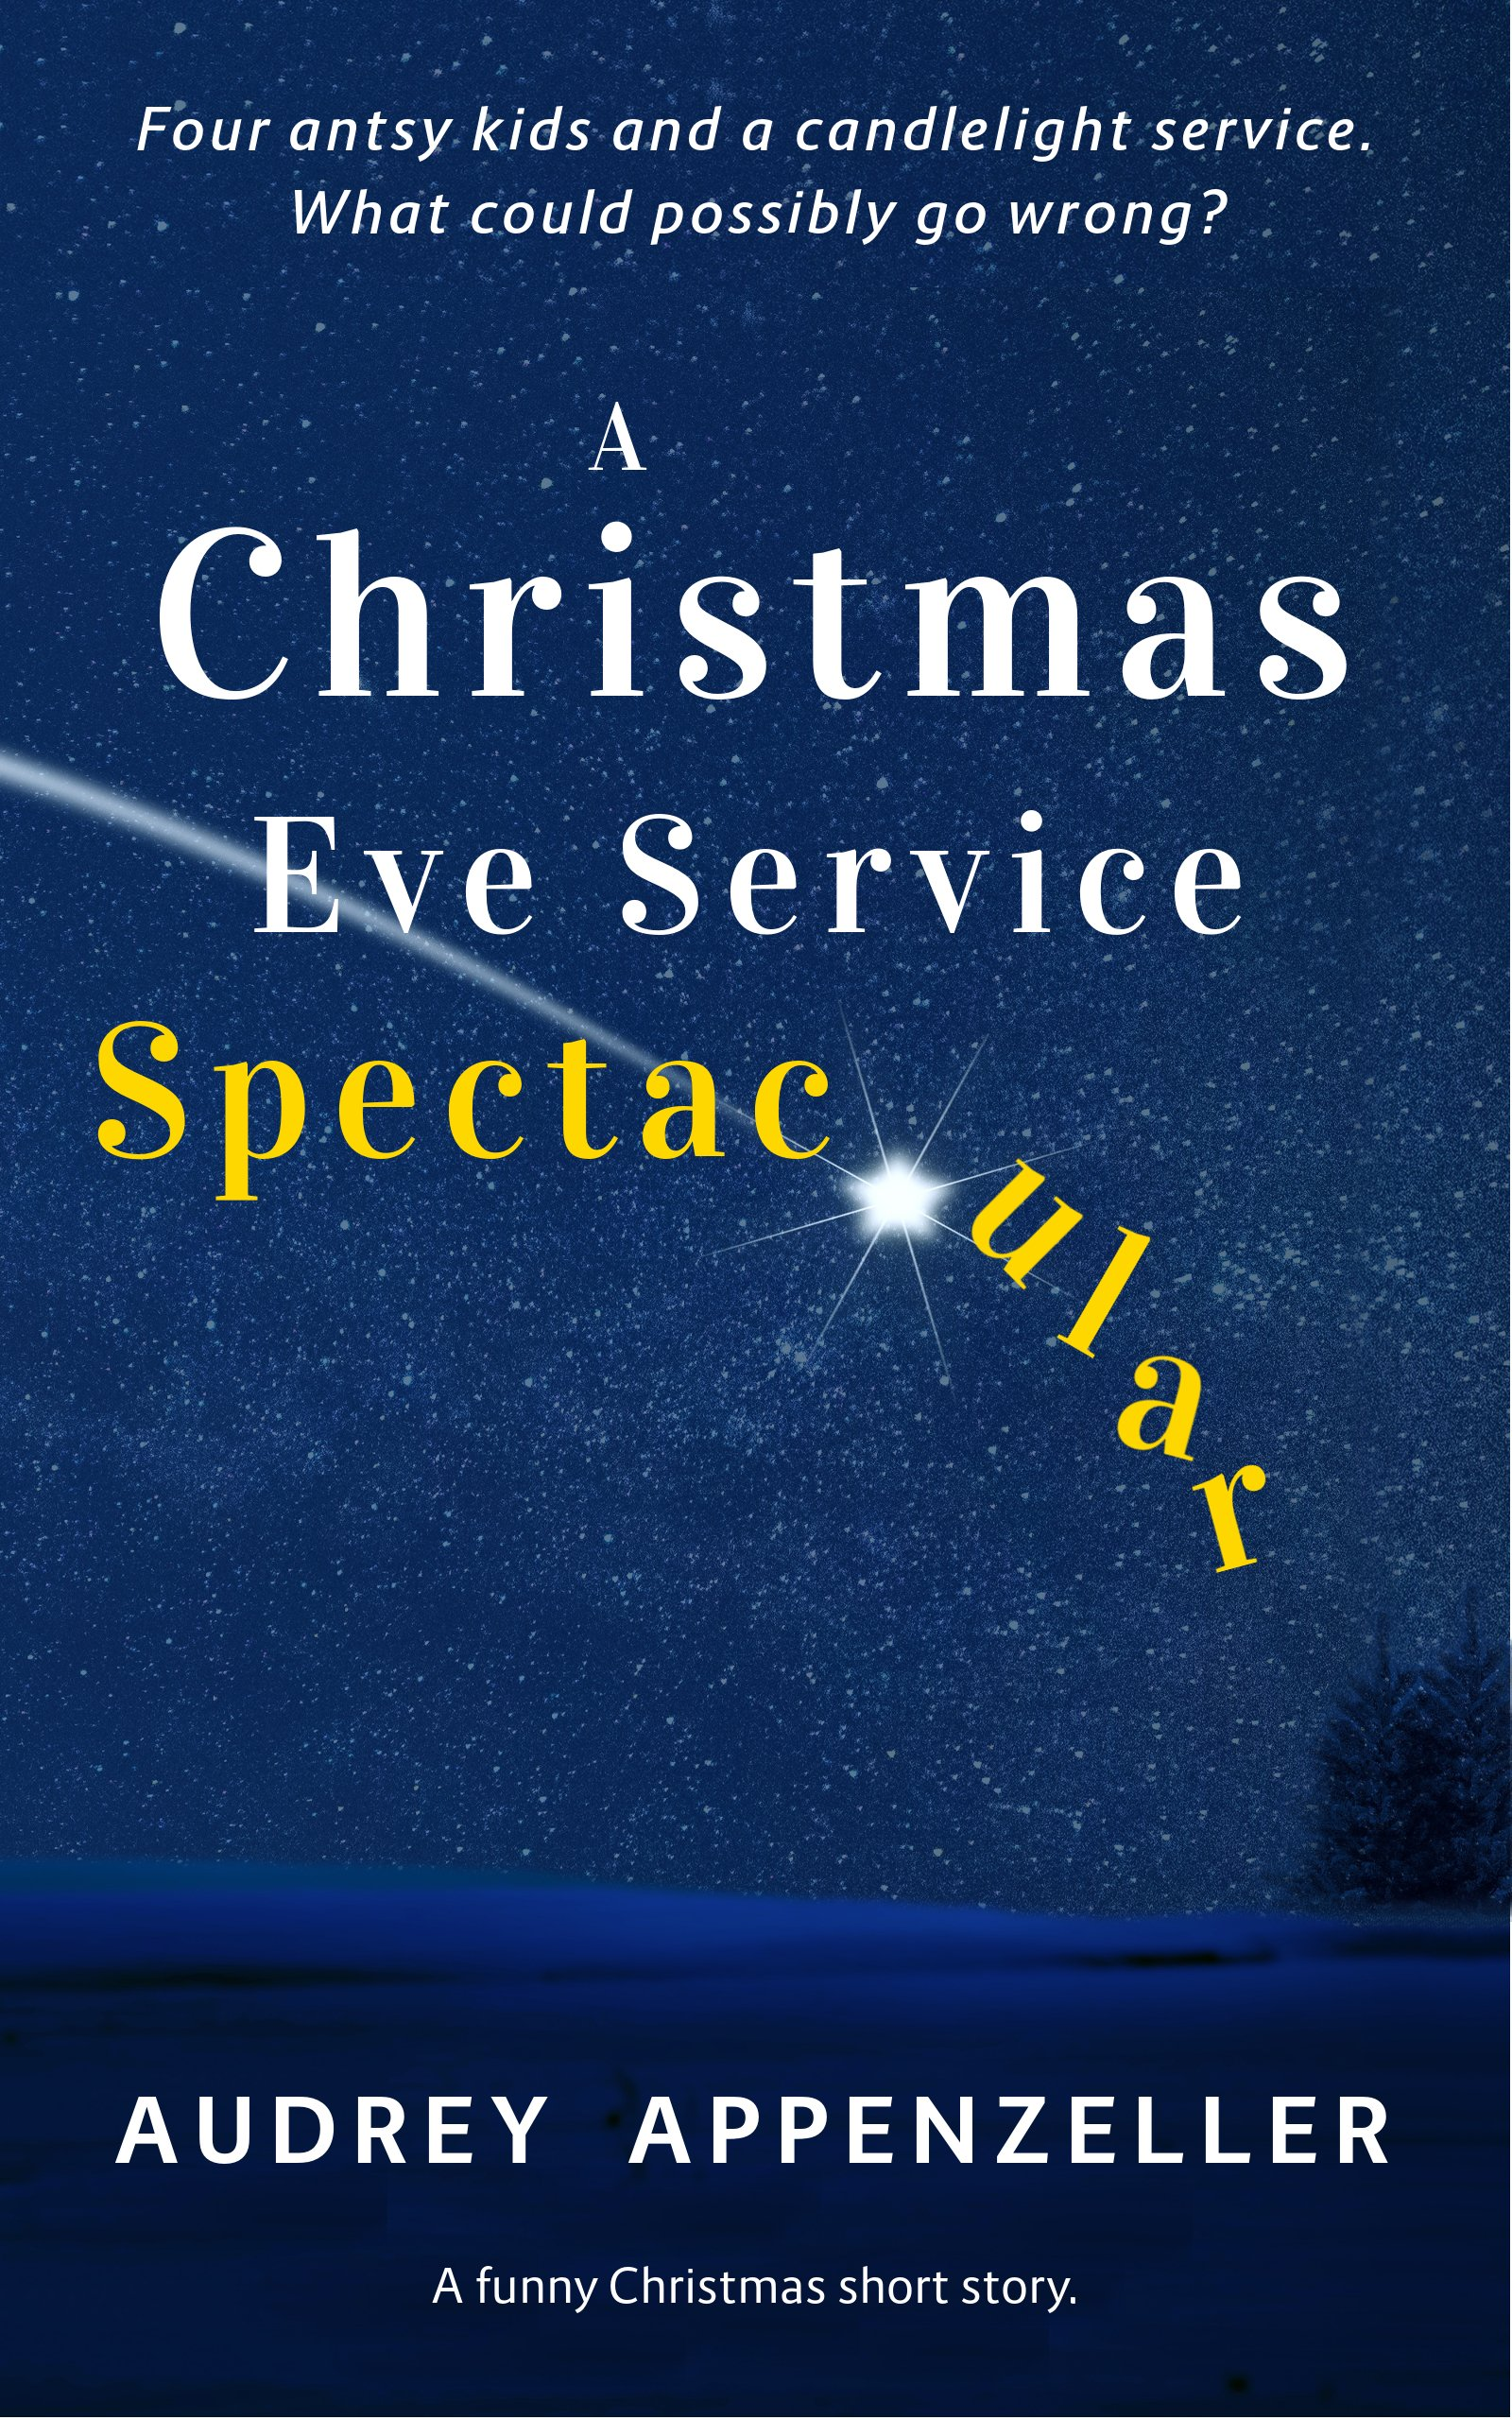 a christmas eve service spectacular a funny christmas short story kindle edition by audrey appenzeller literature fiction kindle ebooks amazoncom